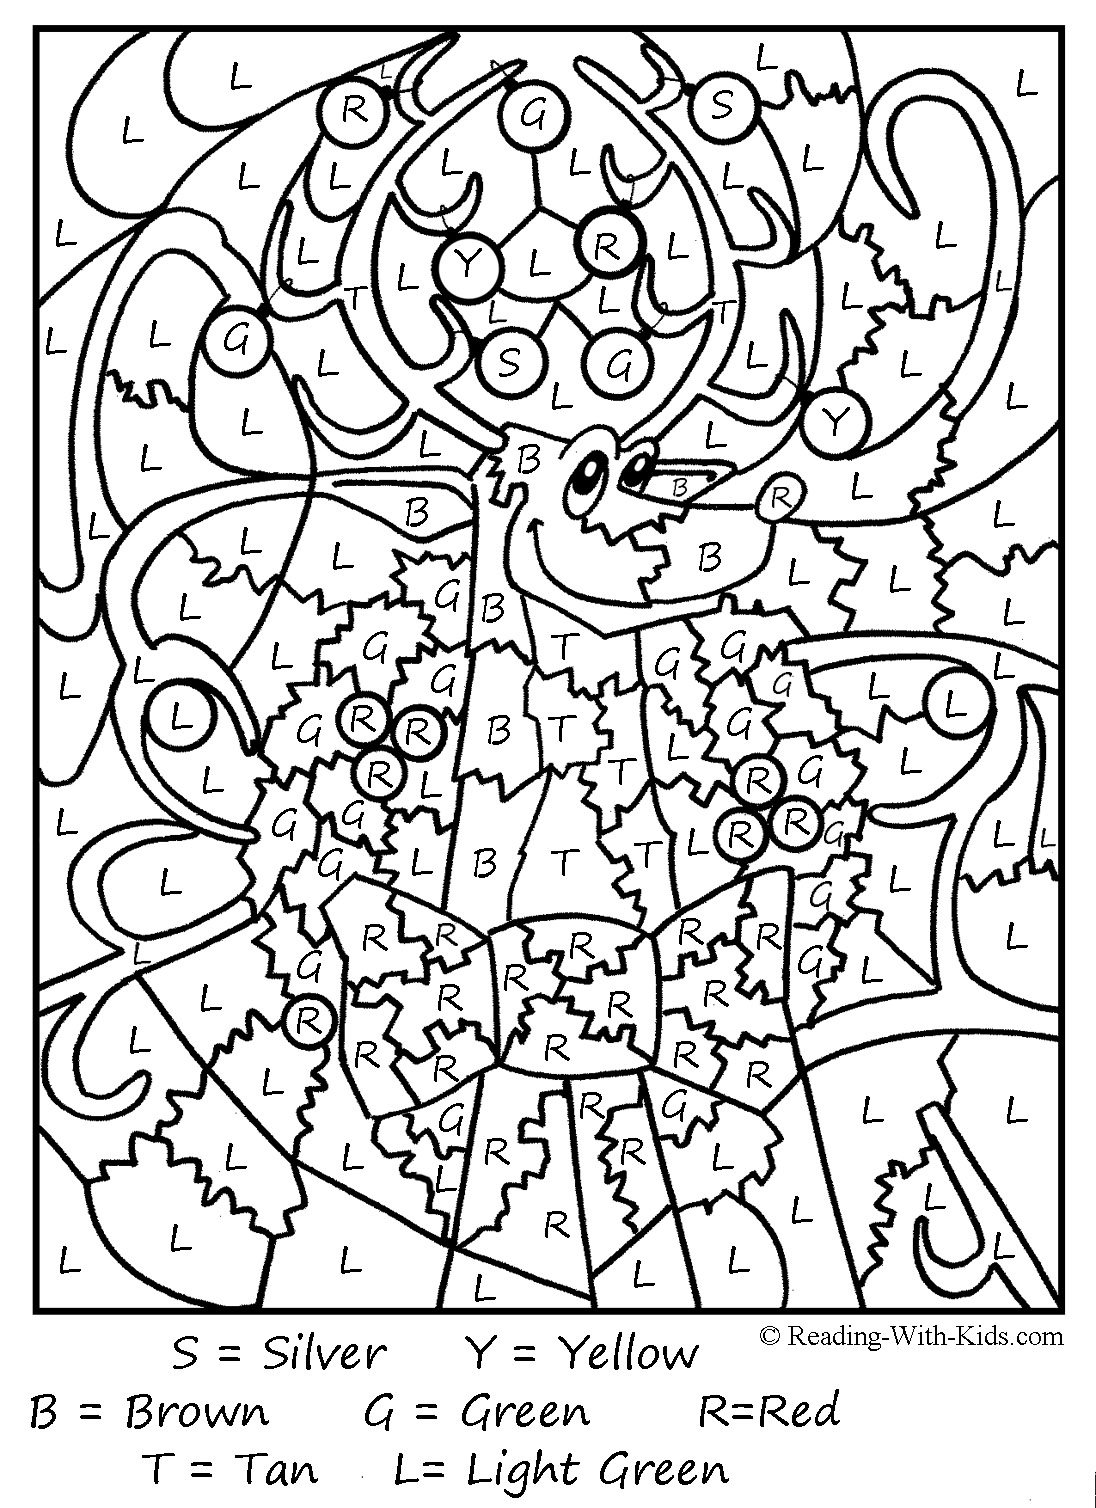 Christmas Coloring Pages And Puzzles With All Holiday